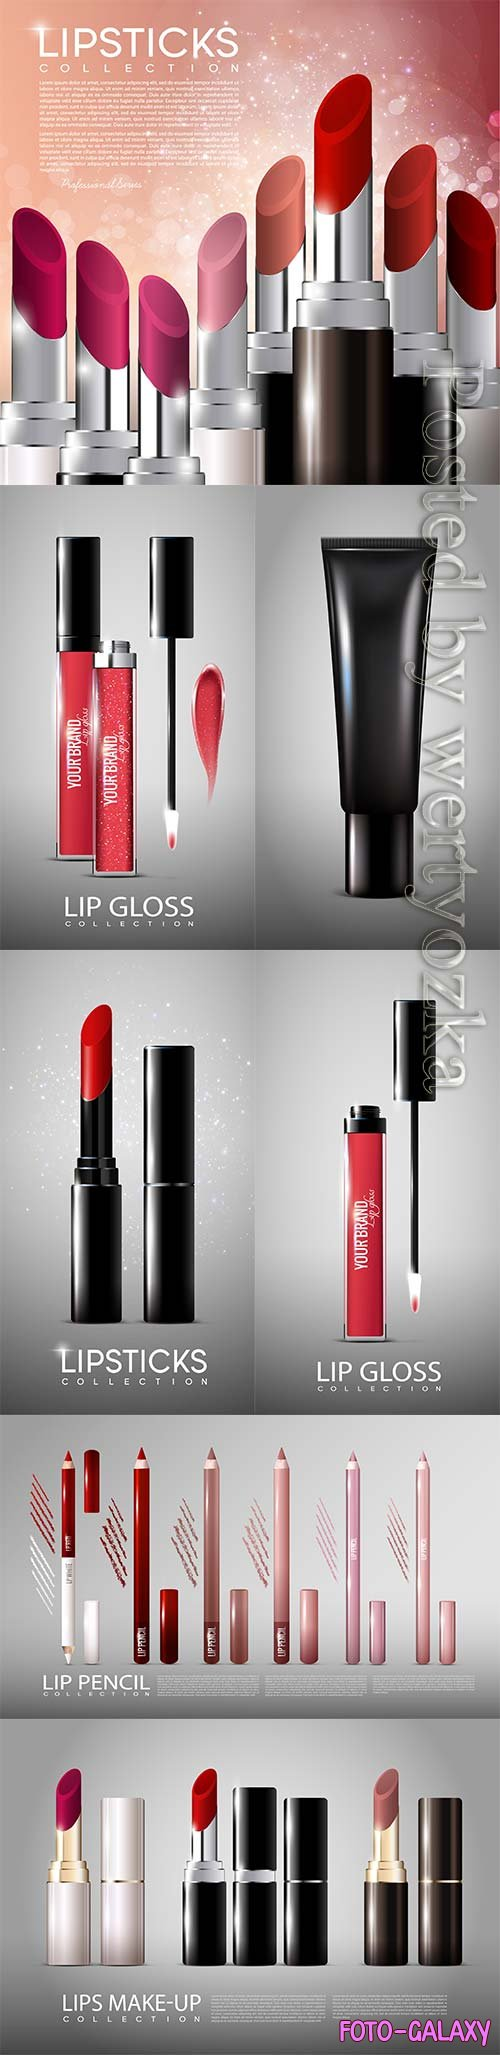 Cosmetic products advertising vector template